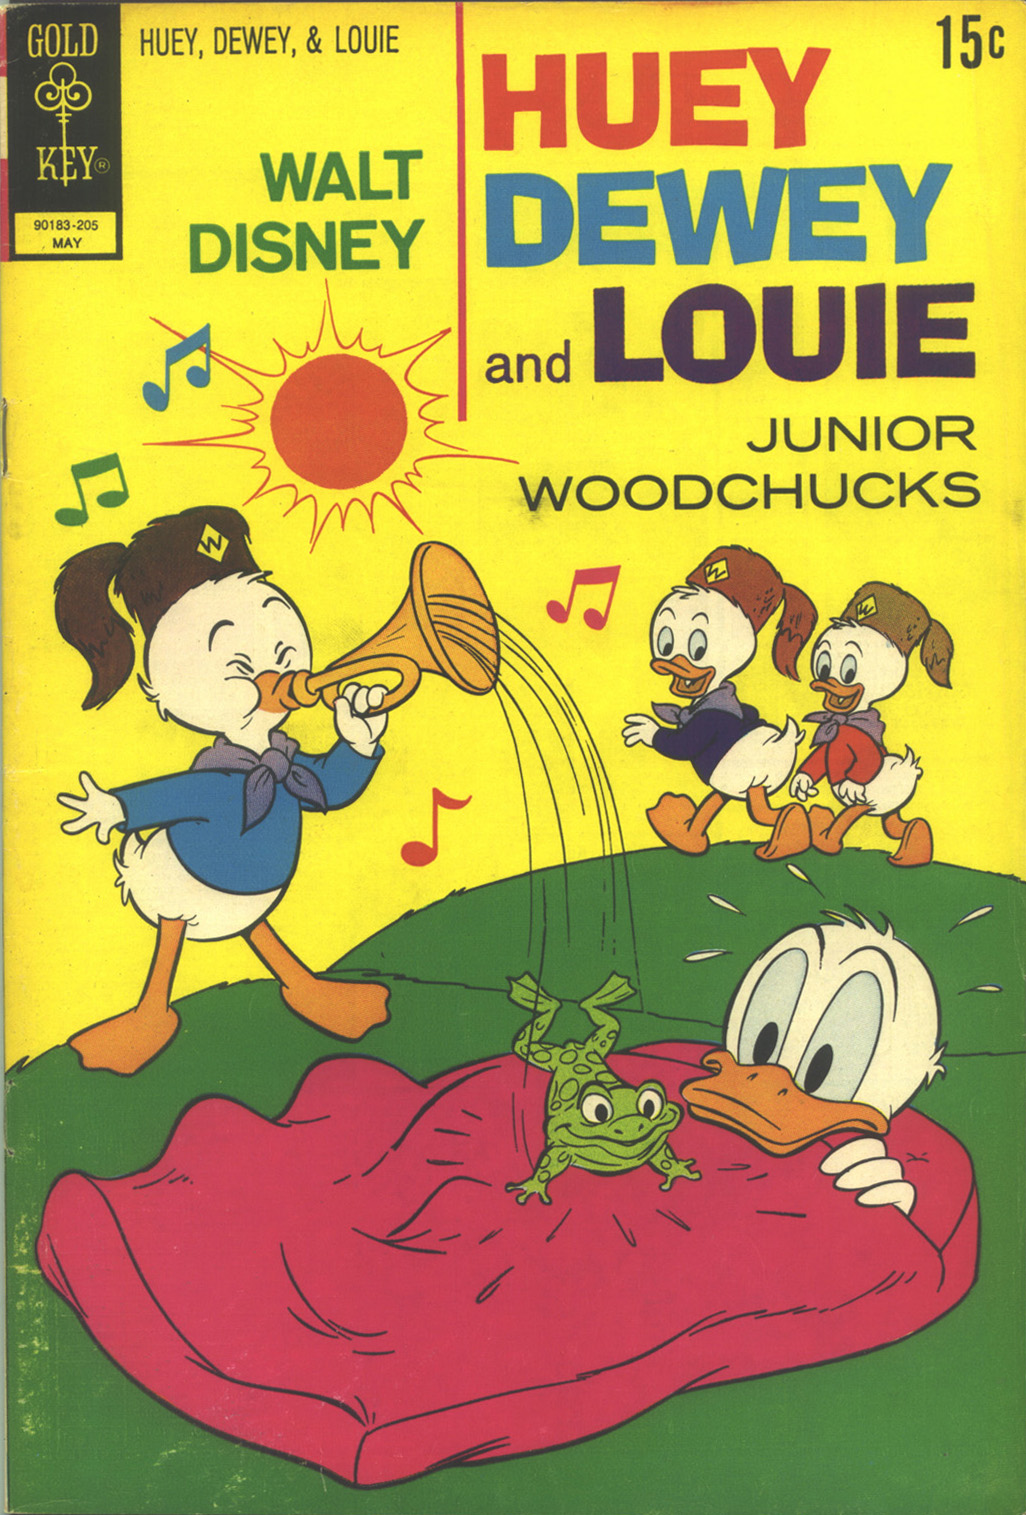 Huey, Dewey, and Louie Junior Woodchucks 14 Page 1